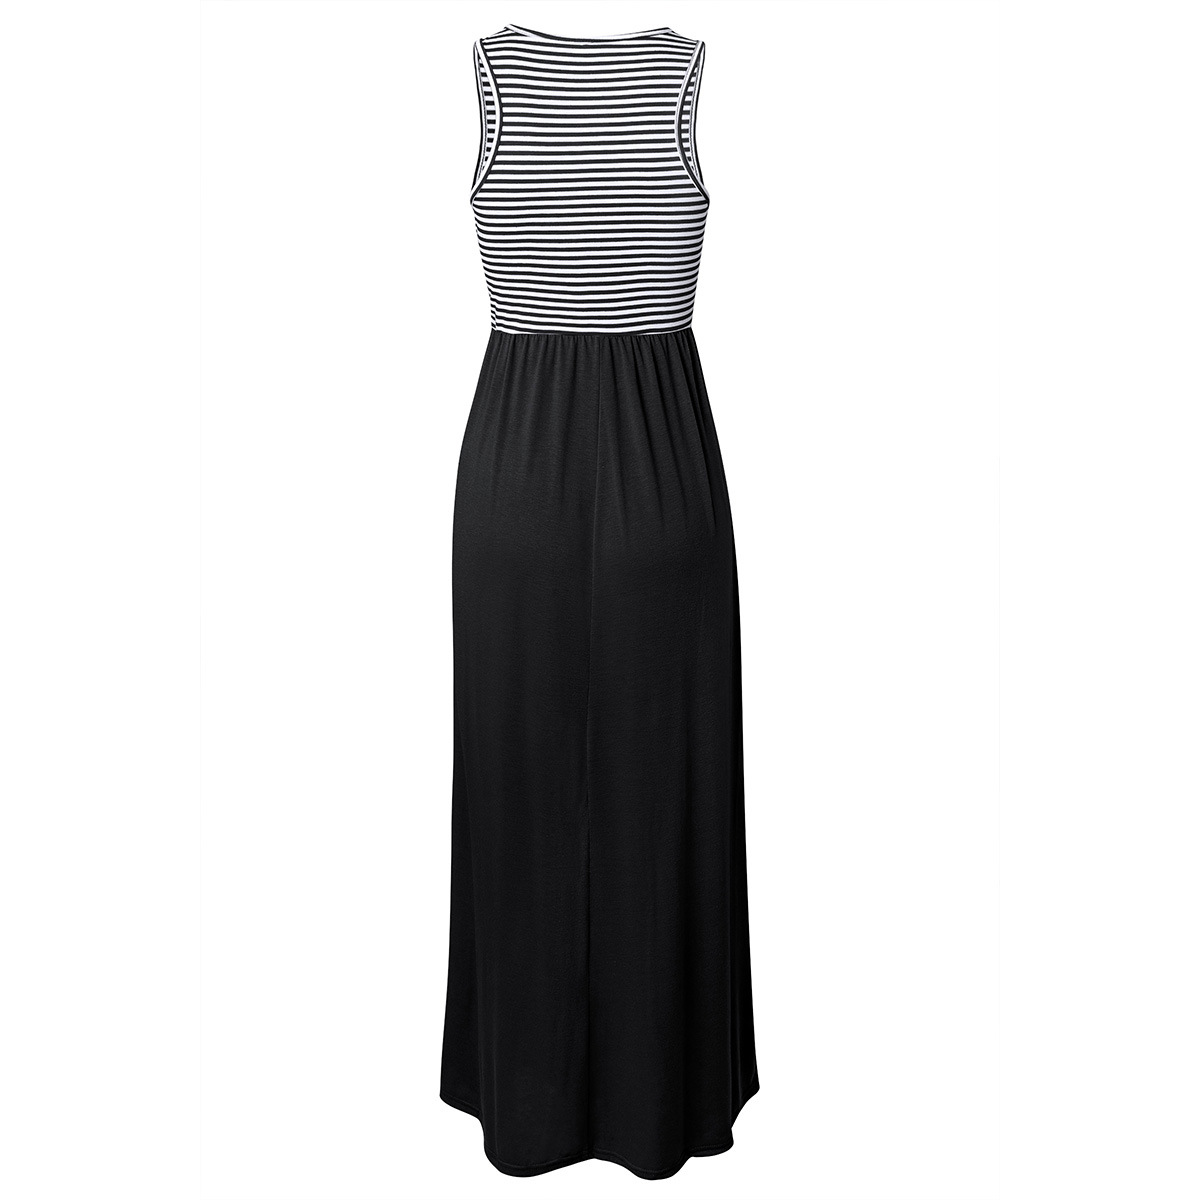 Women Boho Maxi Dress Sleeveless Summer Beach Striped Patchwok Long Sundress black